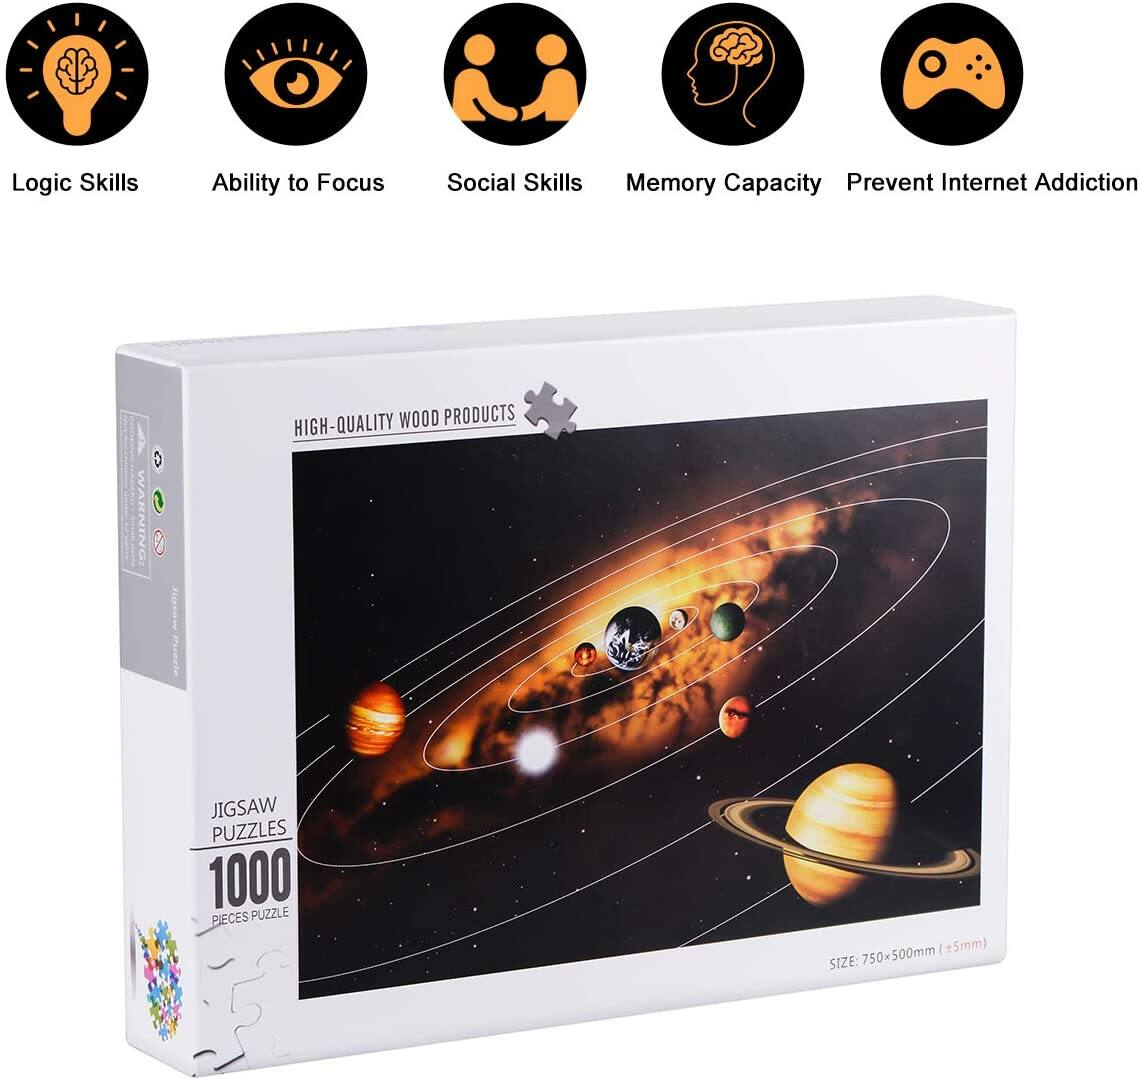 1000-Piece SnowCinda Jigsaw Puzzle (Solar System in Space)